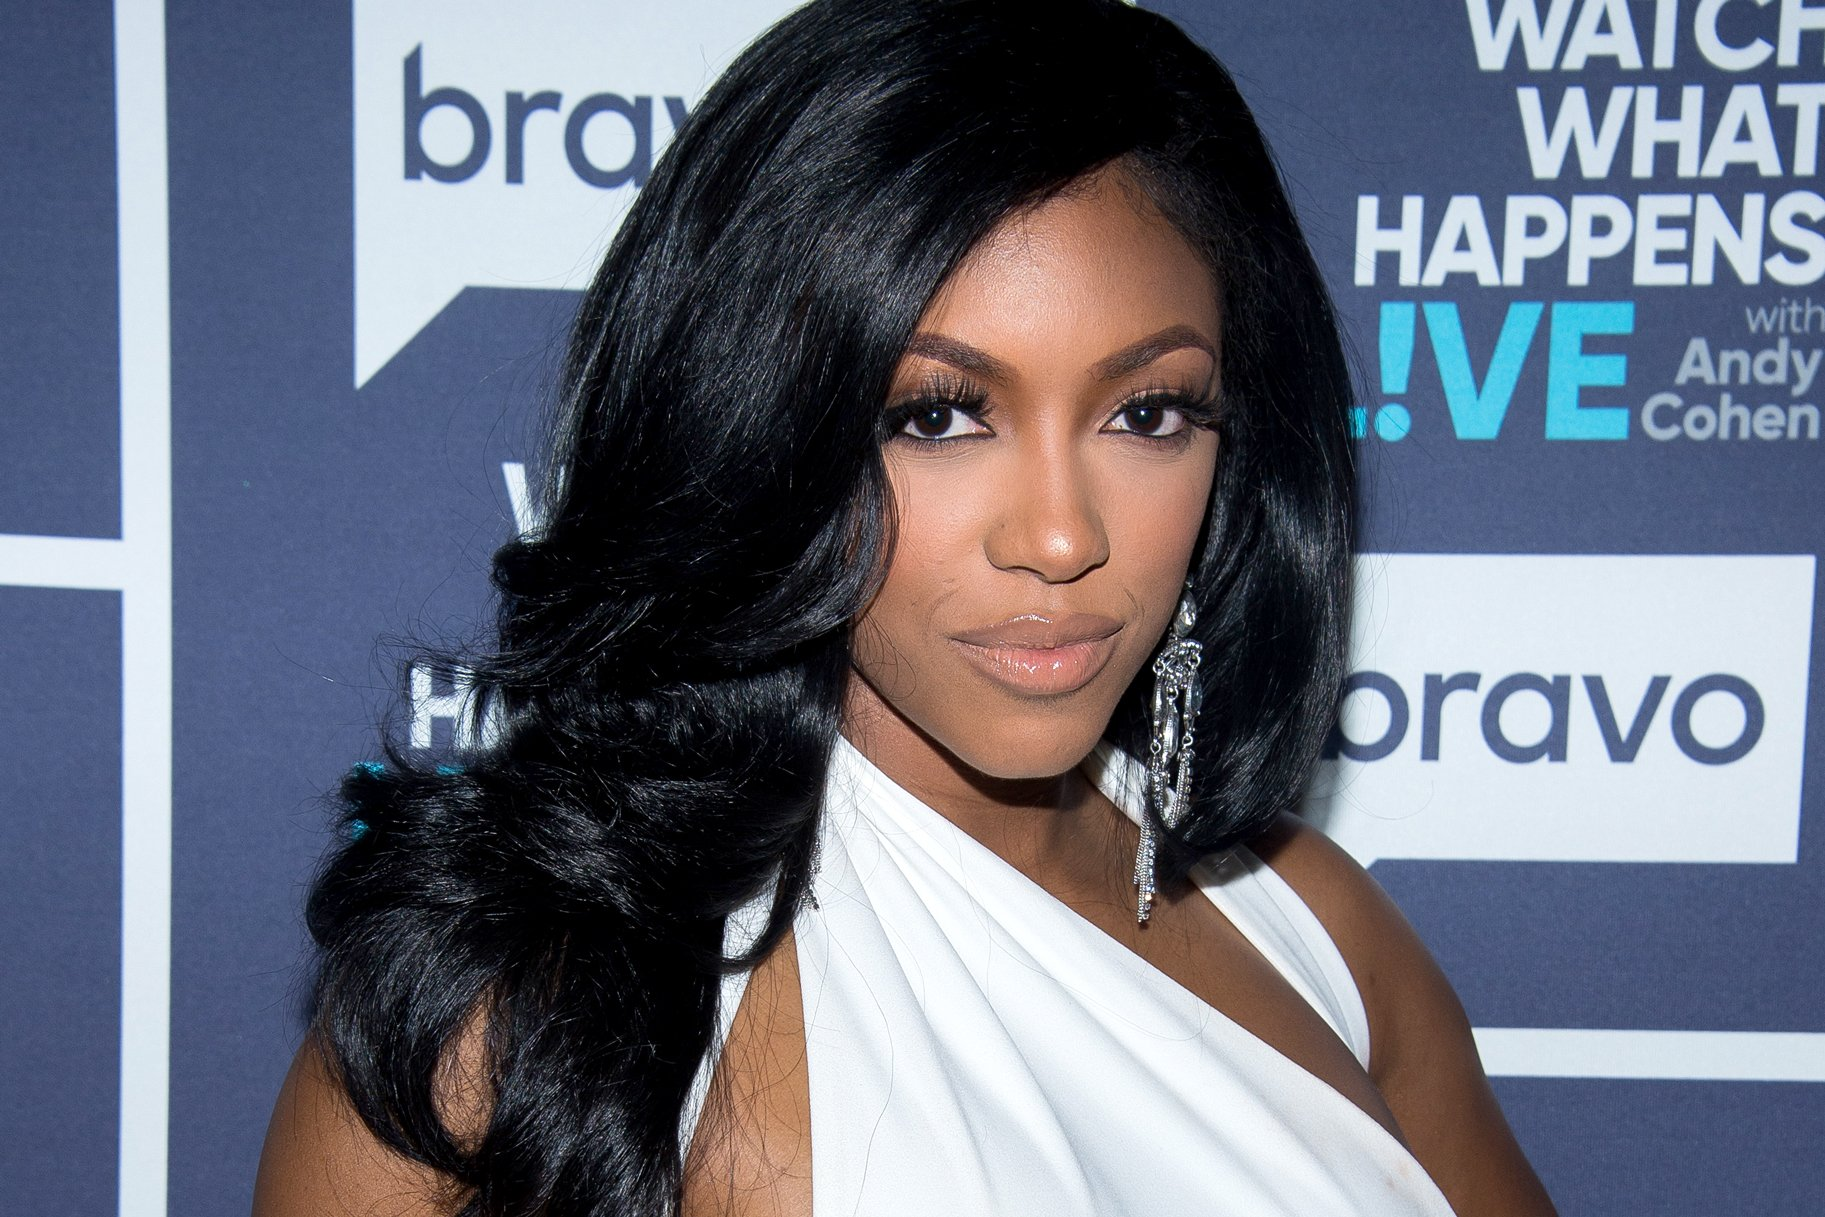 Porsha Williams Has Something To Say About The Charges She's Facing